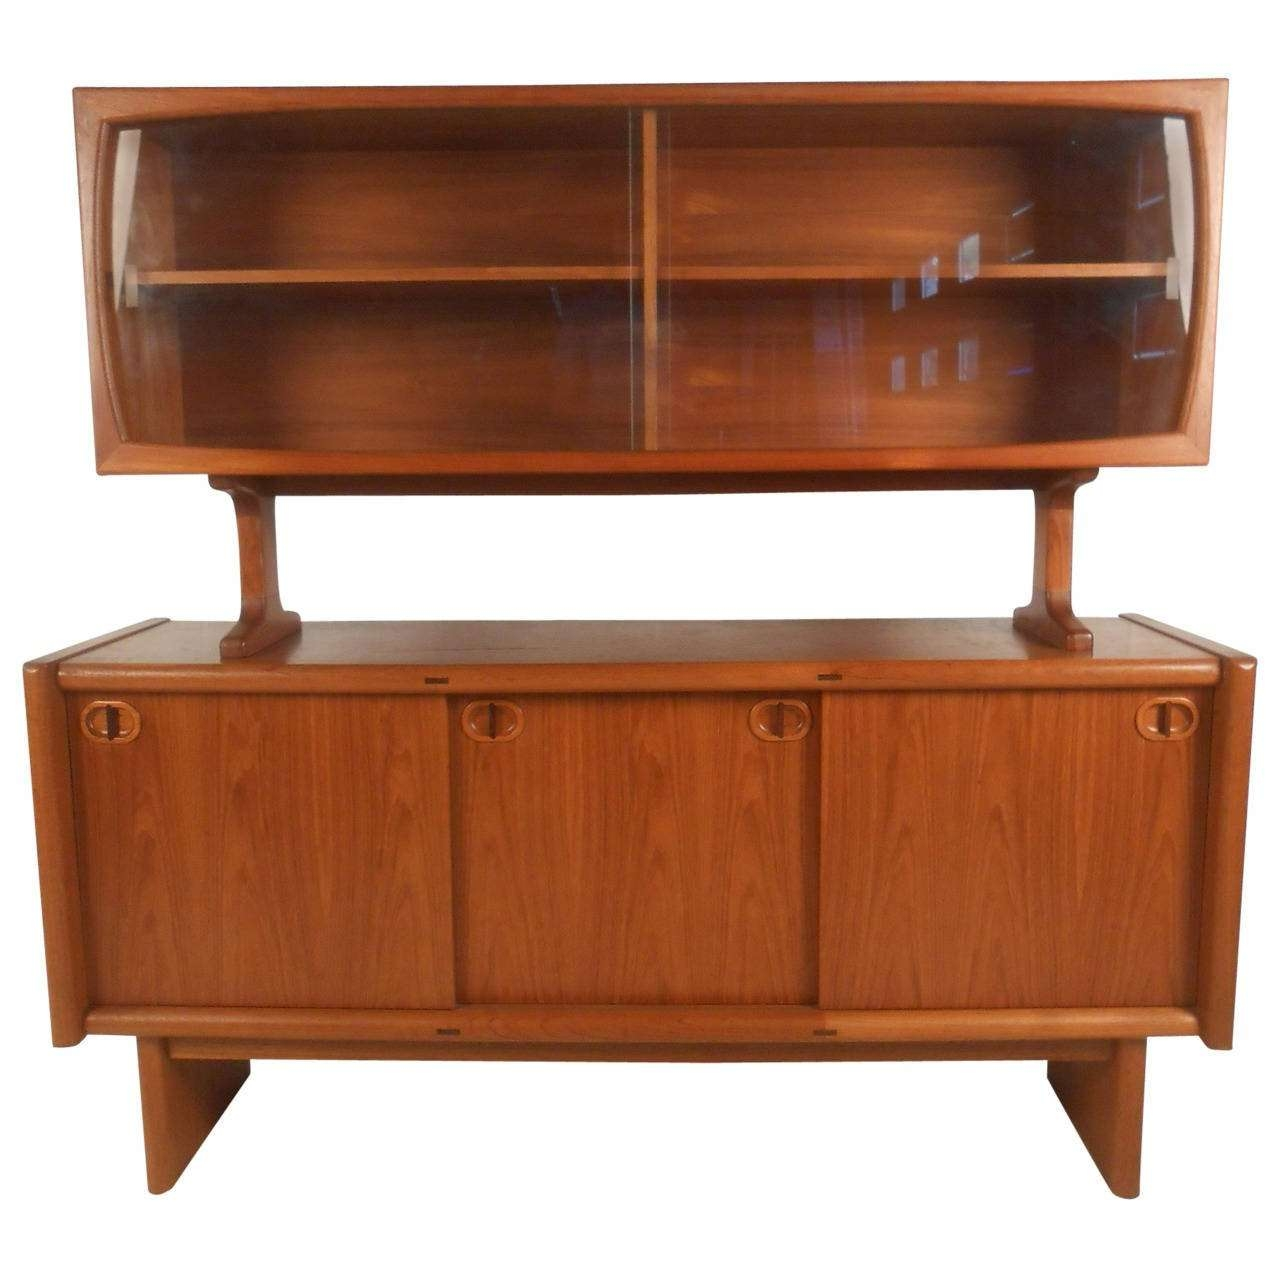 Midcentury Style Danish Teak Sideboard With Display Topper For With Regard To Teak Sideboards (View 13 of 20)